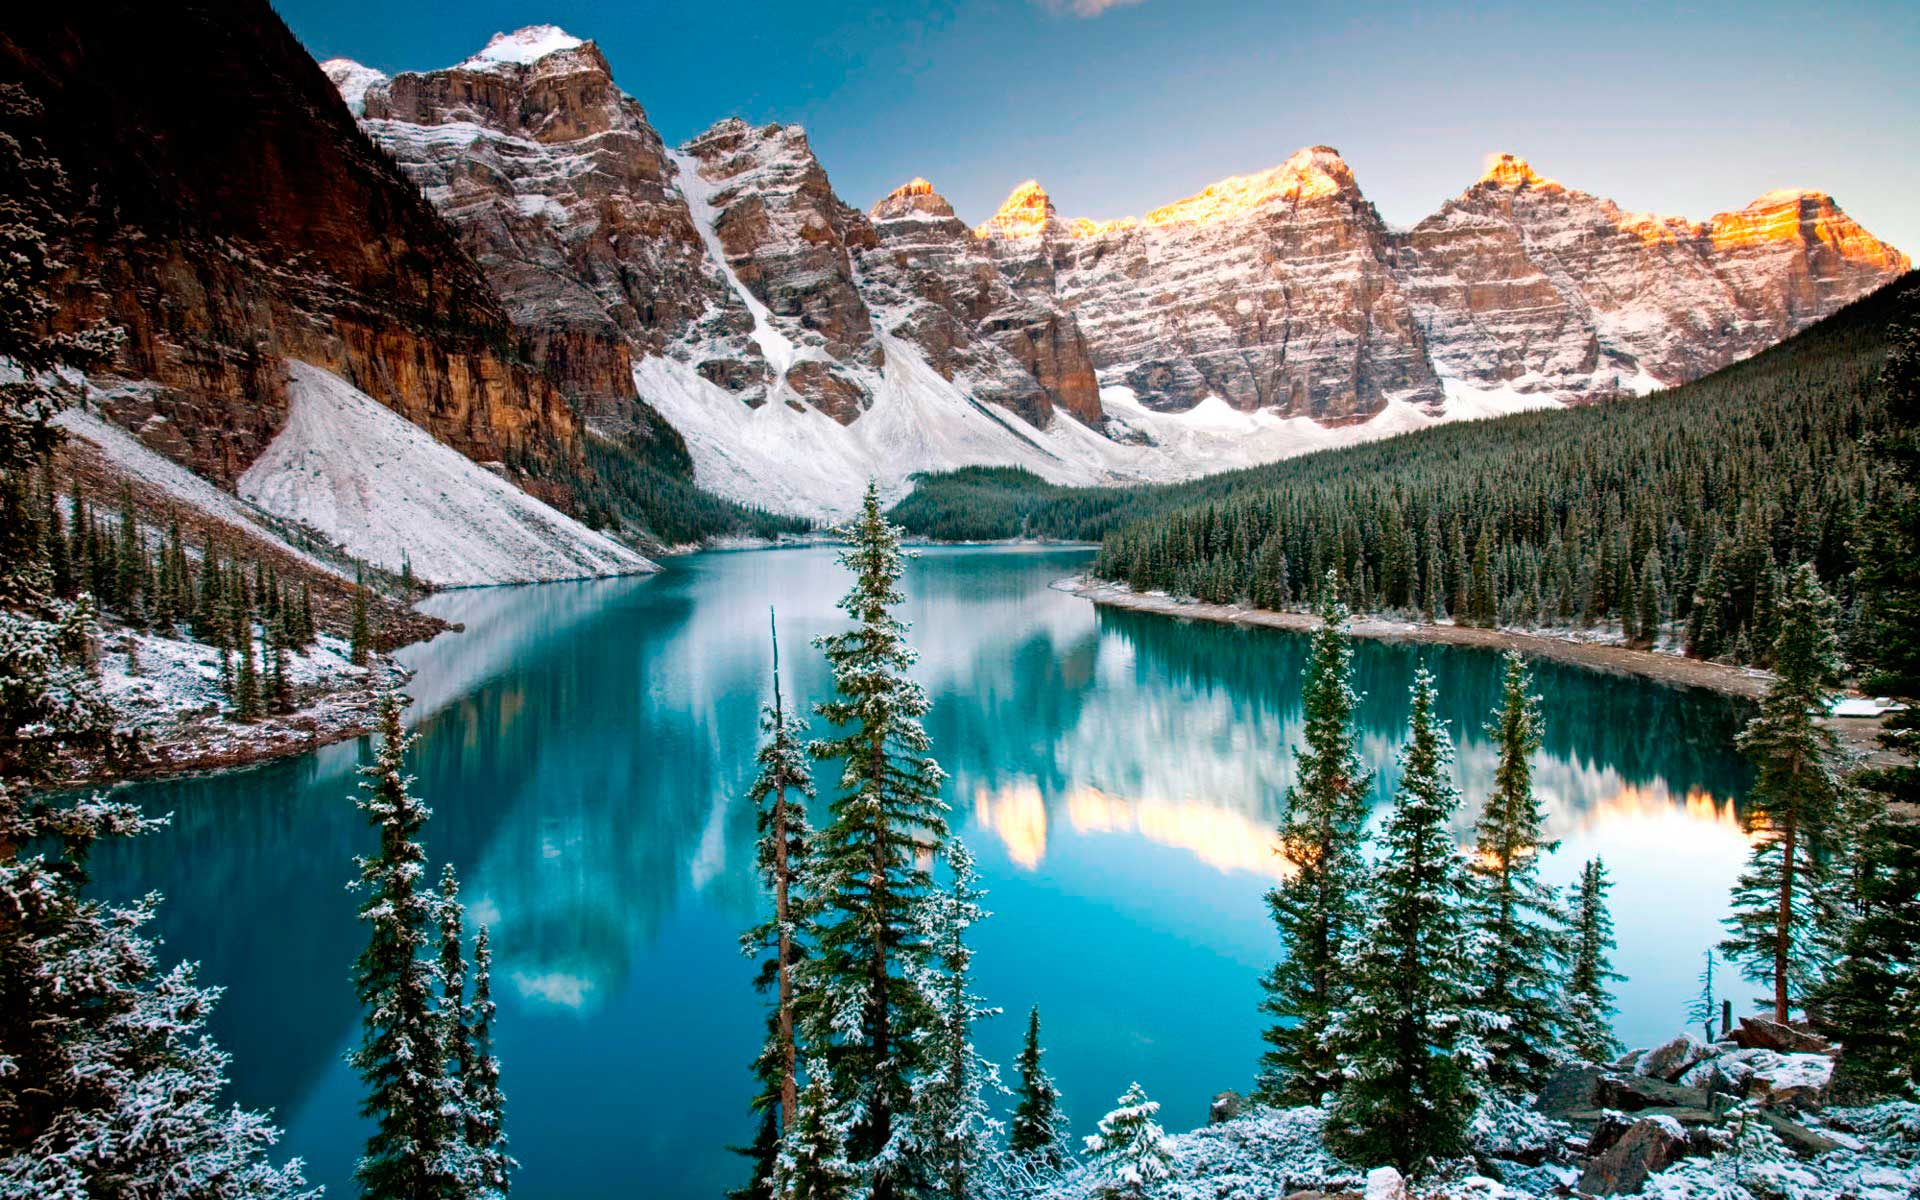 Crédito foto: http://handluggageonly.co.uk/2016/09/19/12-amazing-sights-you-have-to-see-in-banff-canada/